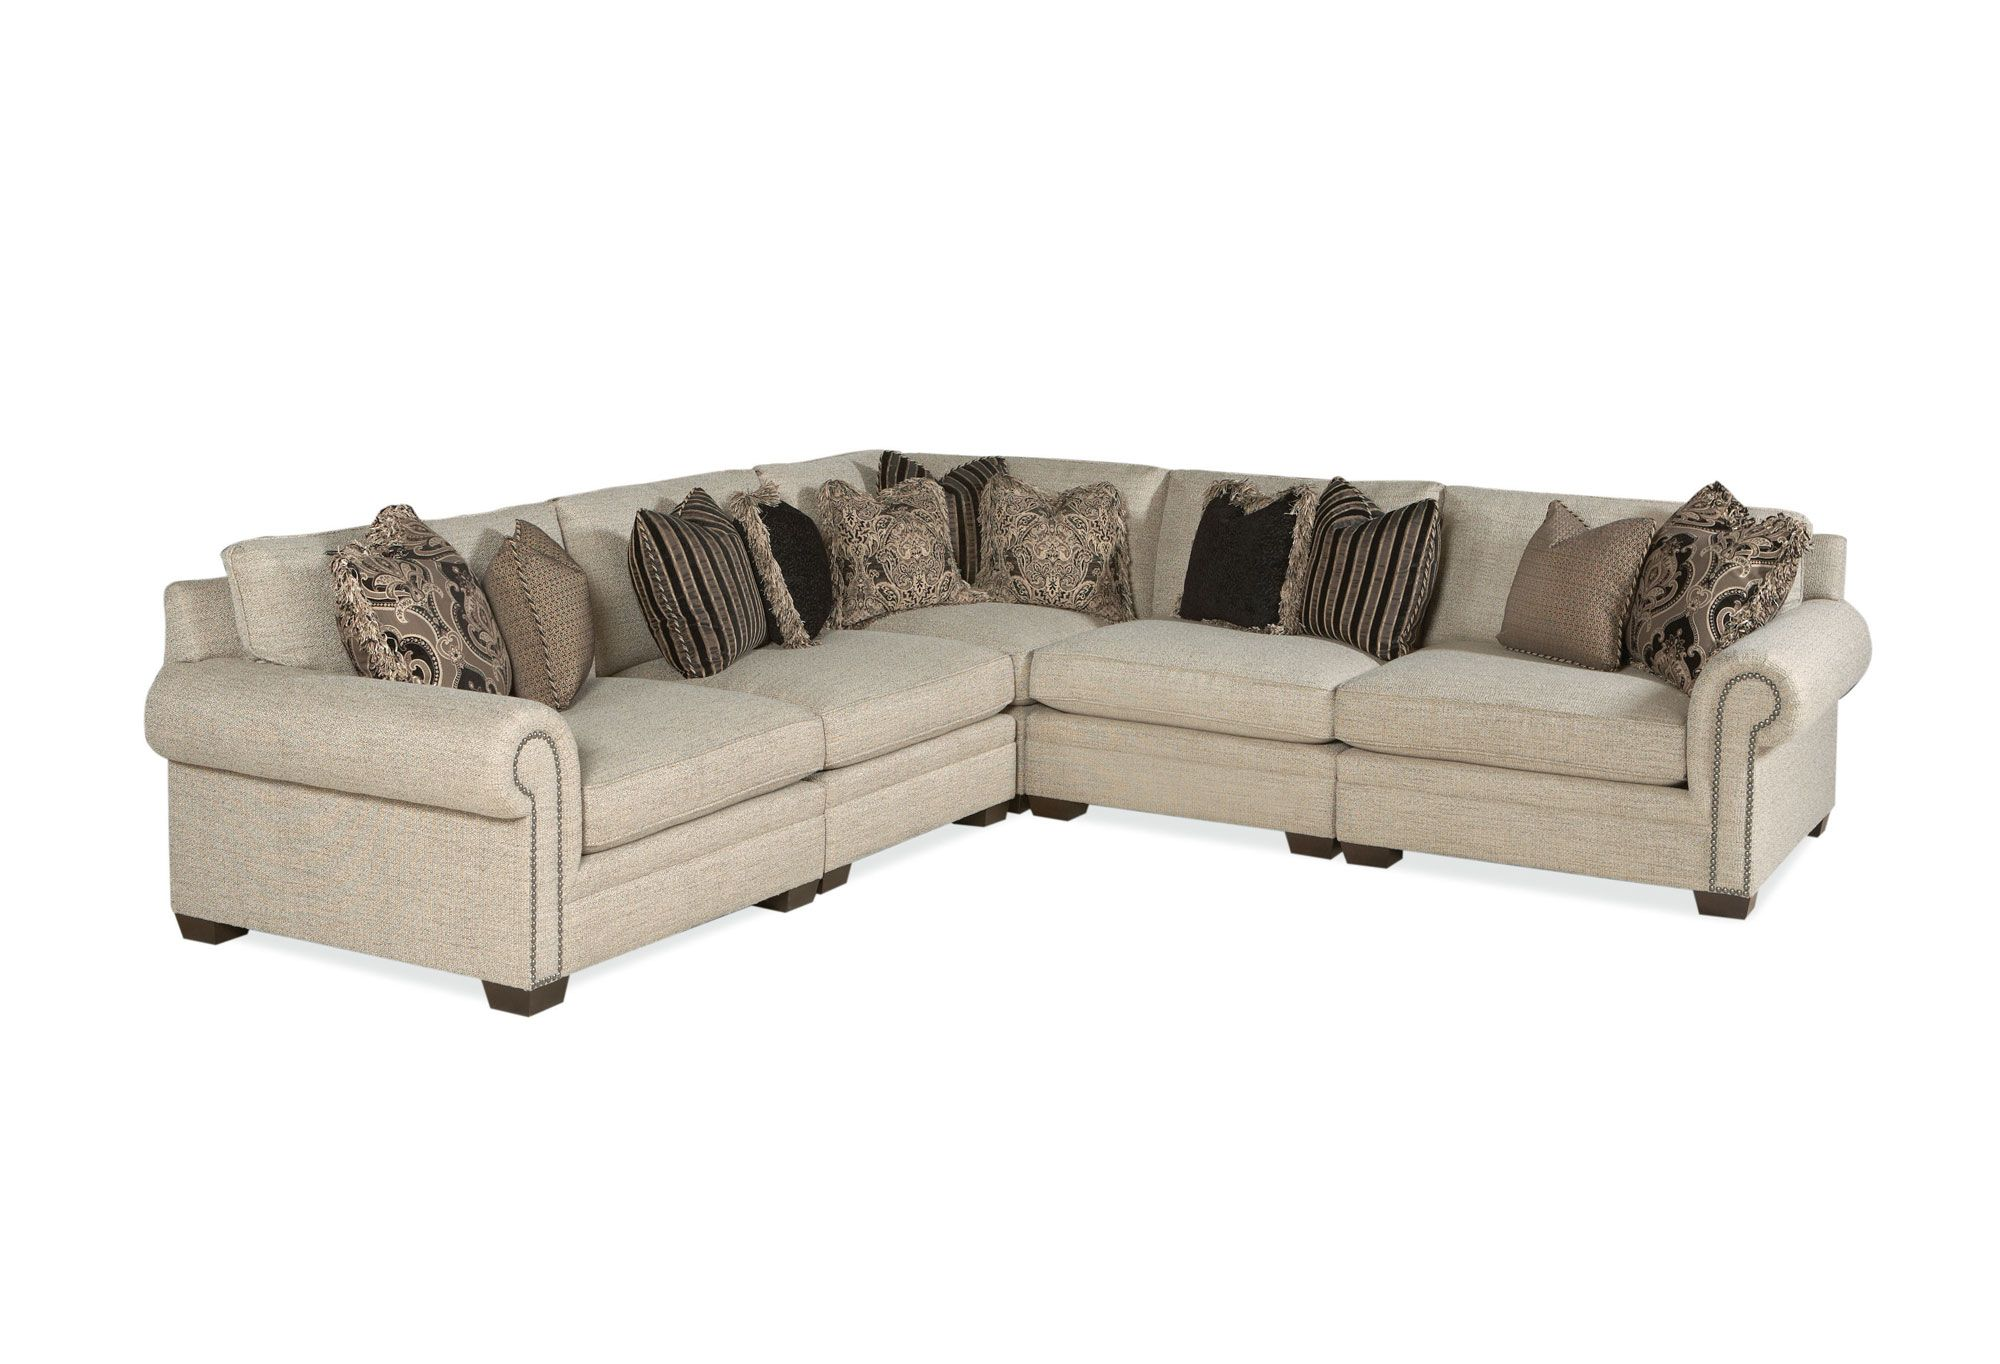 Bernhardt Brae Sectional Sofa B6893 B6842 Barns